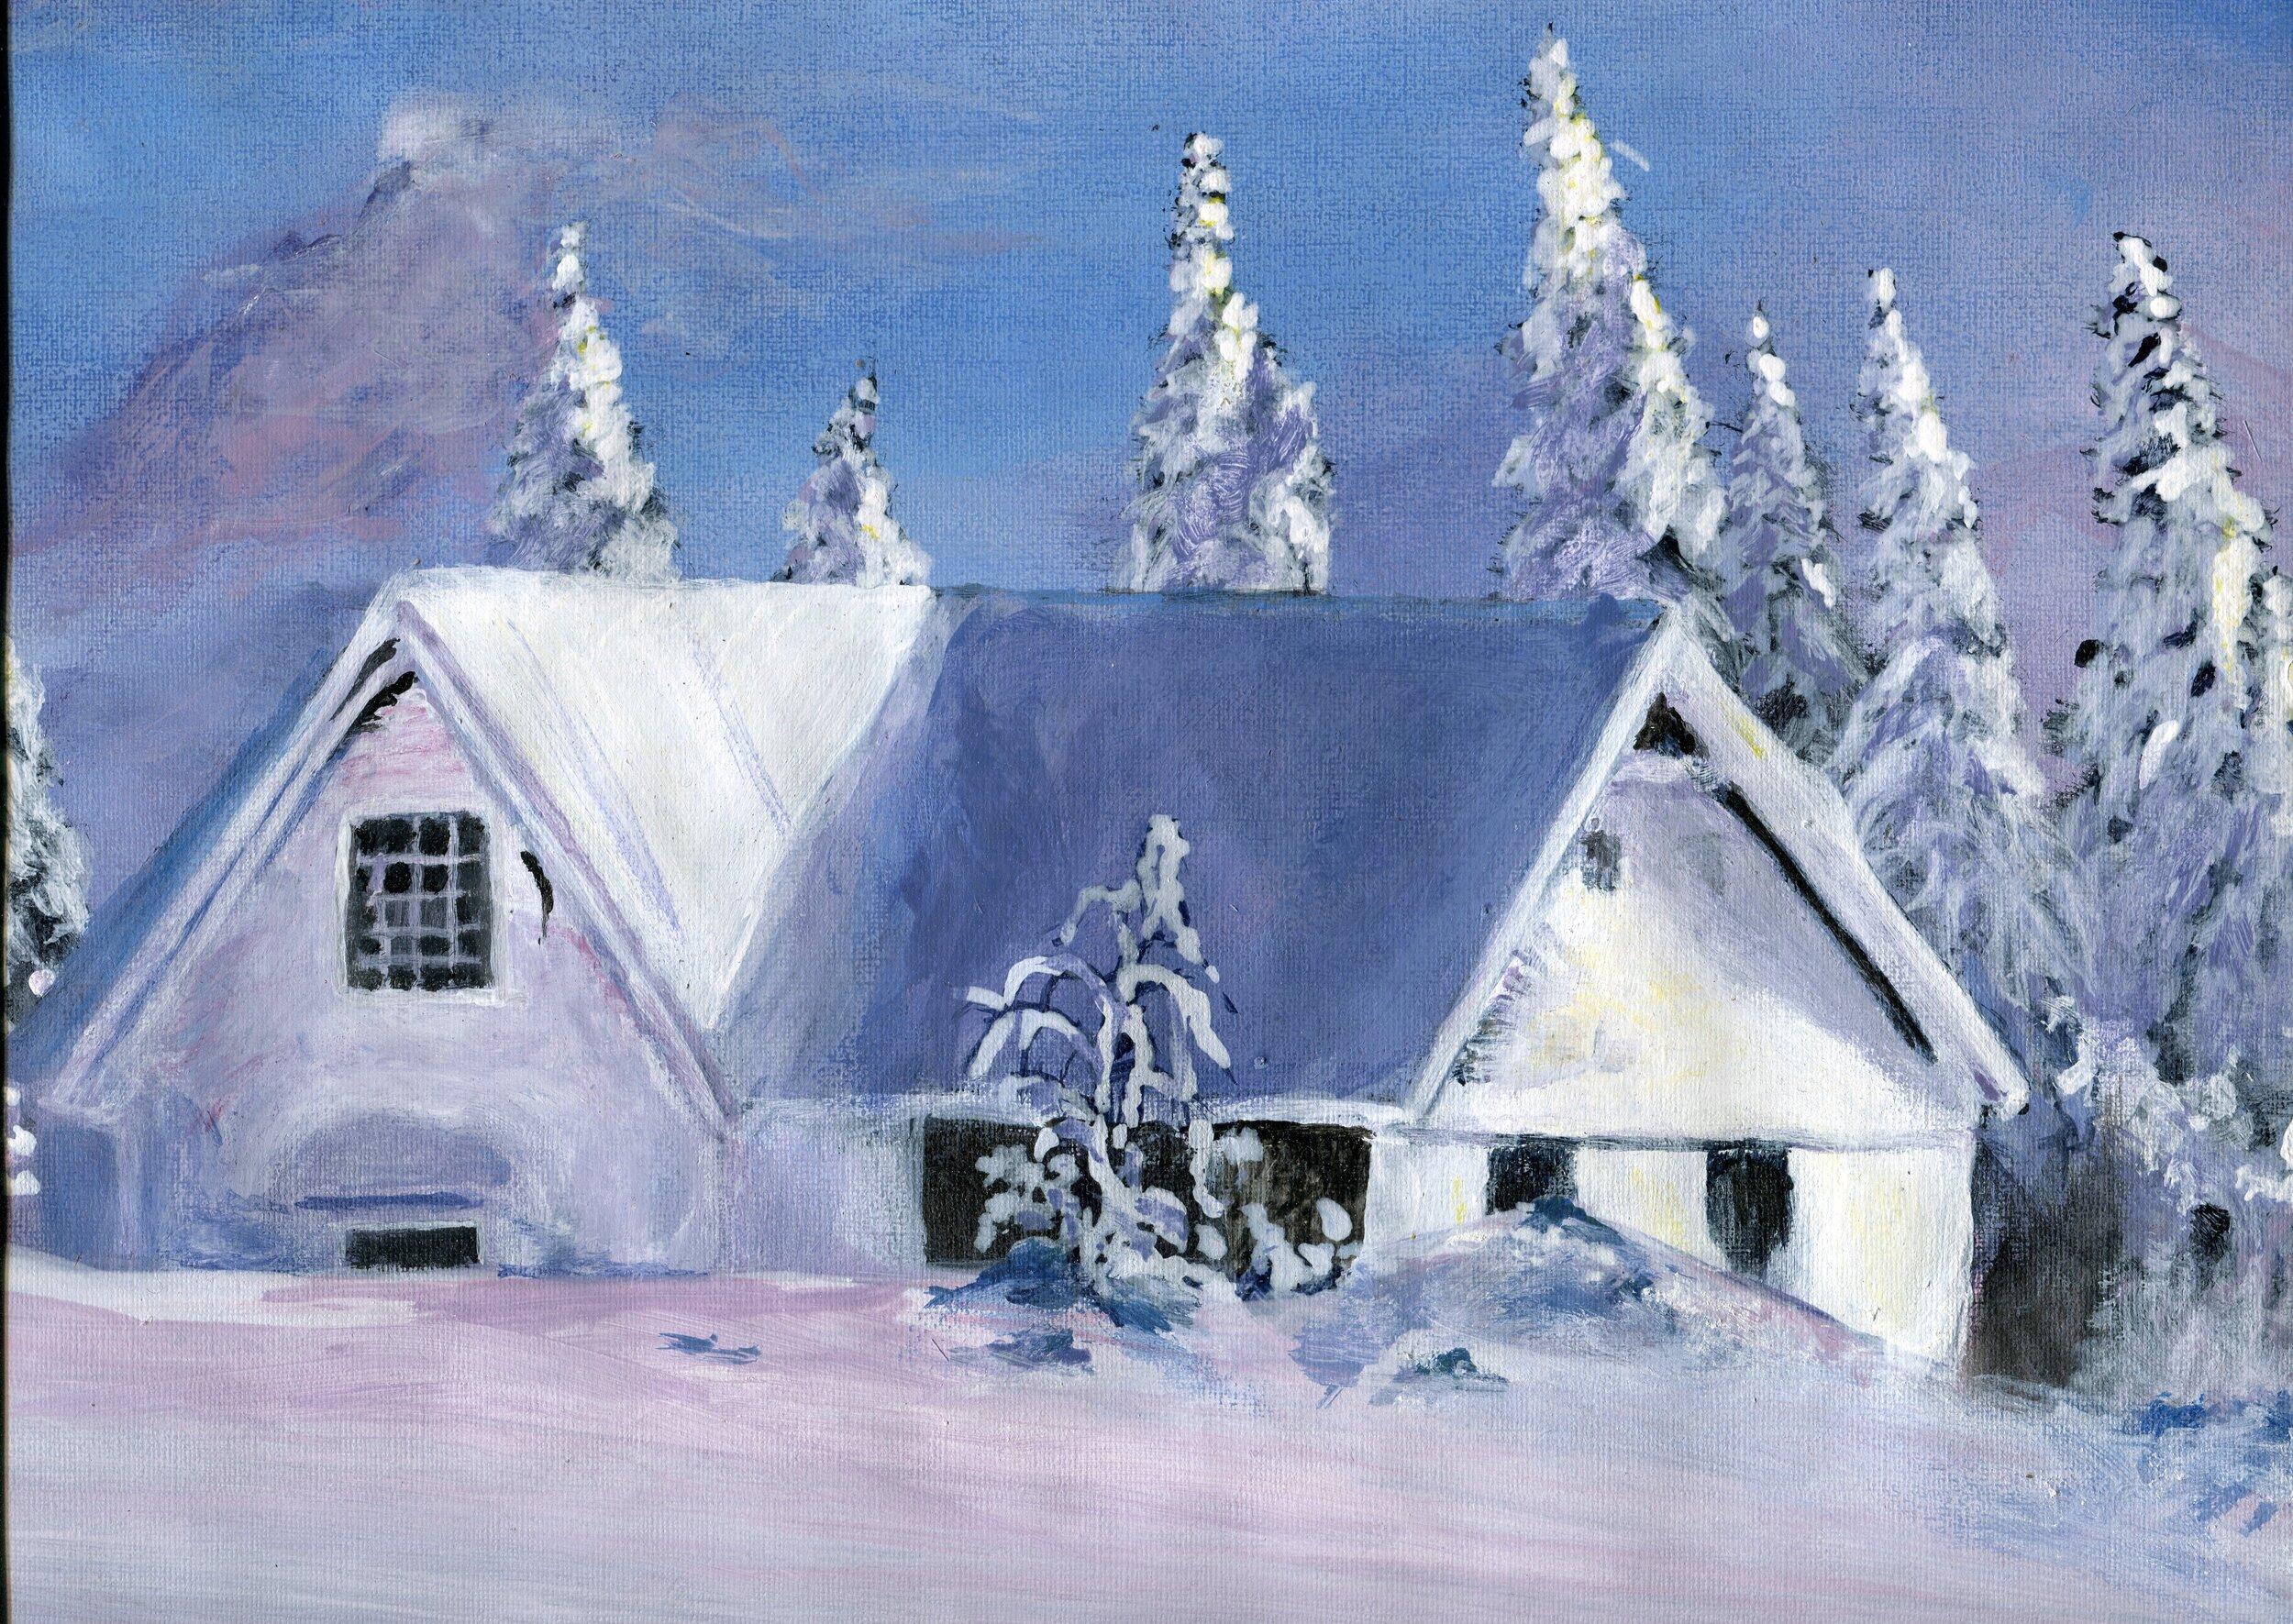 70b  Allen Hlela  Snow mountain house  fabric paint on paper